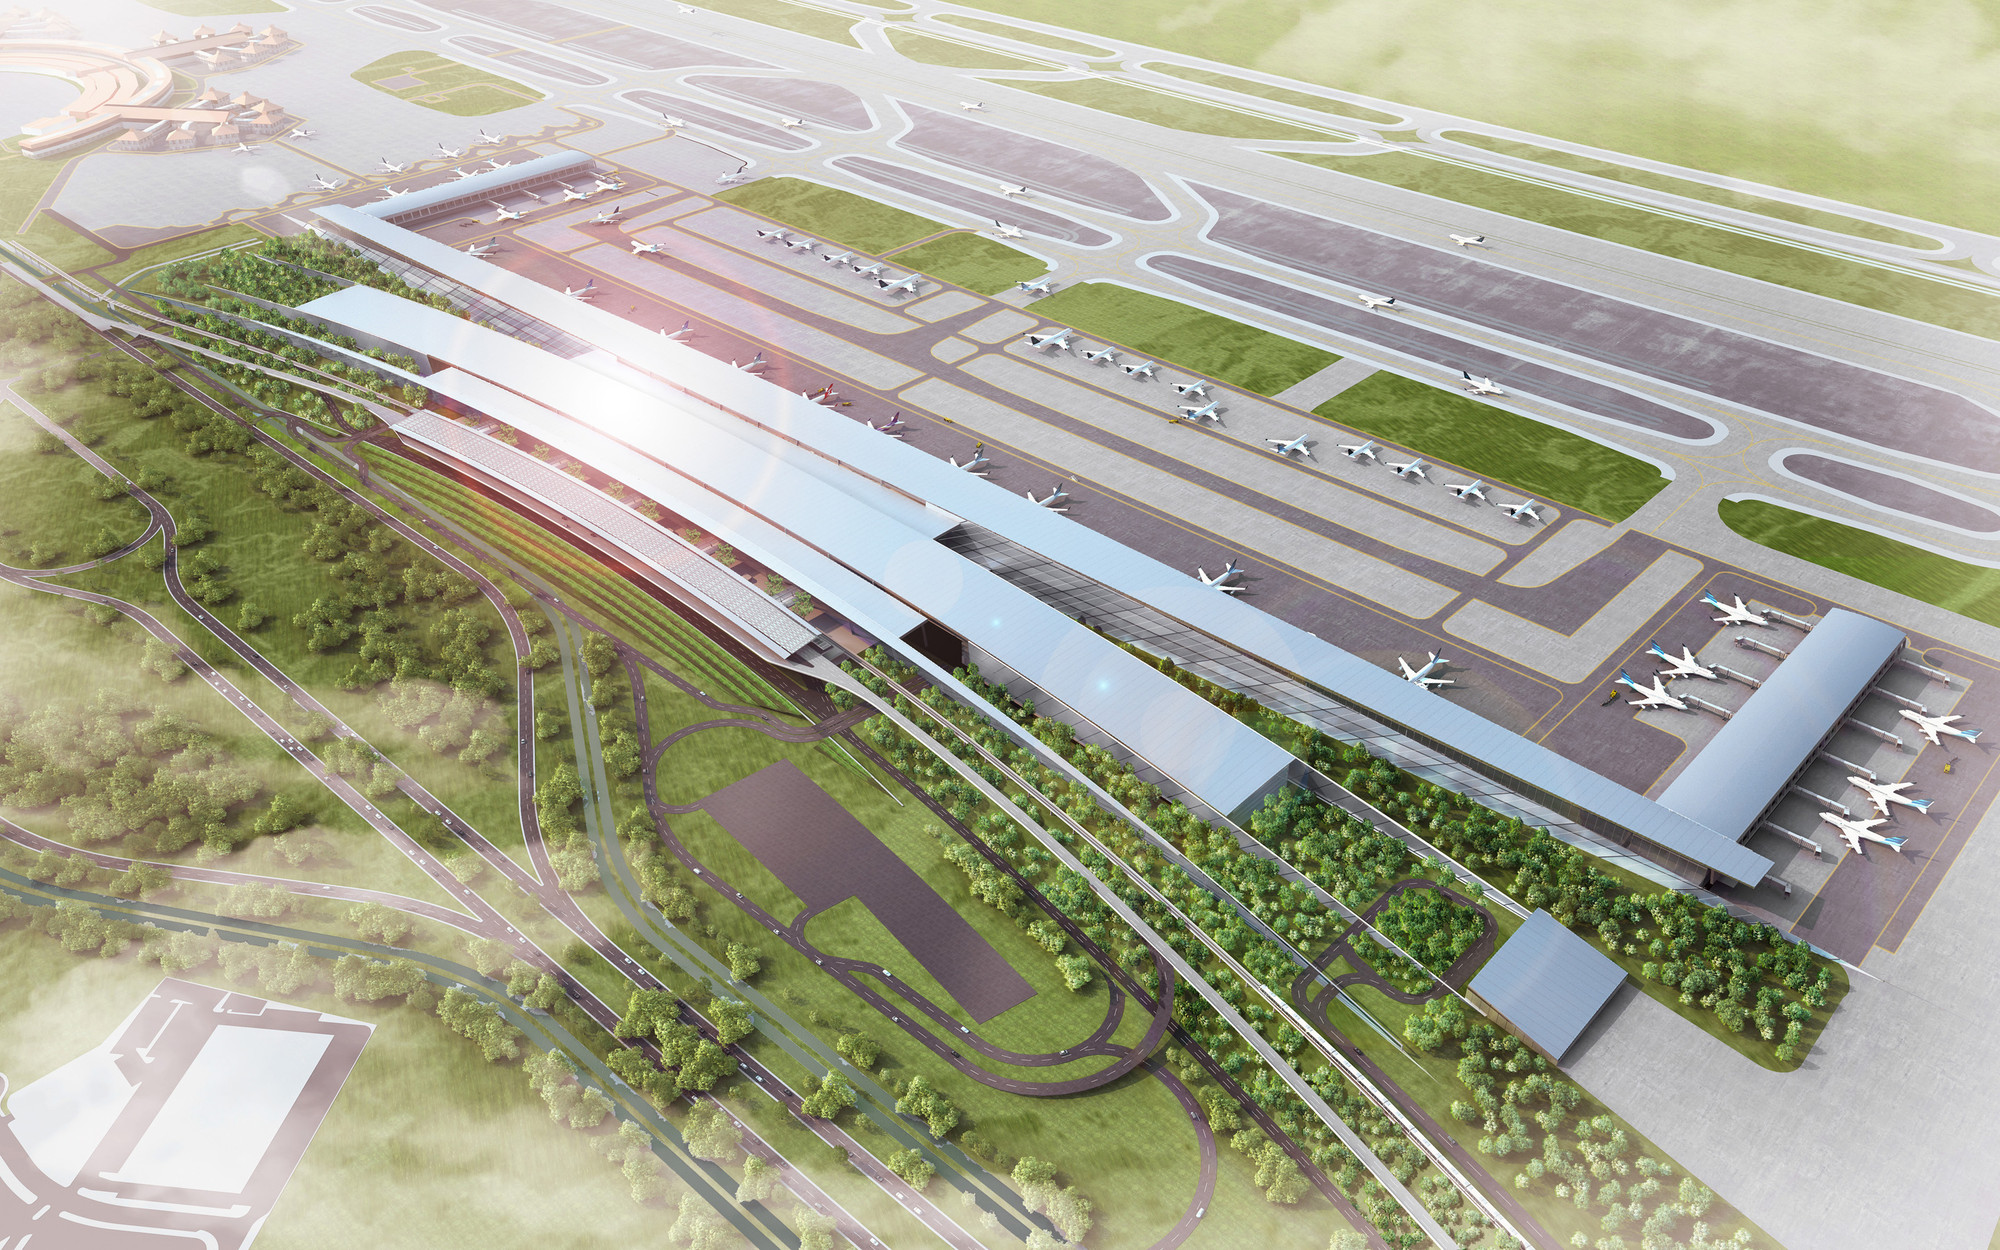 Soekarno Hatta International Airport Terminal 3 Winning Proposal / Woodhead, Courtesy of Woodhead